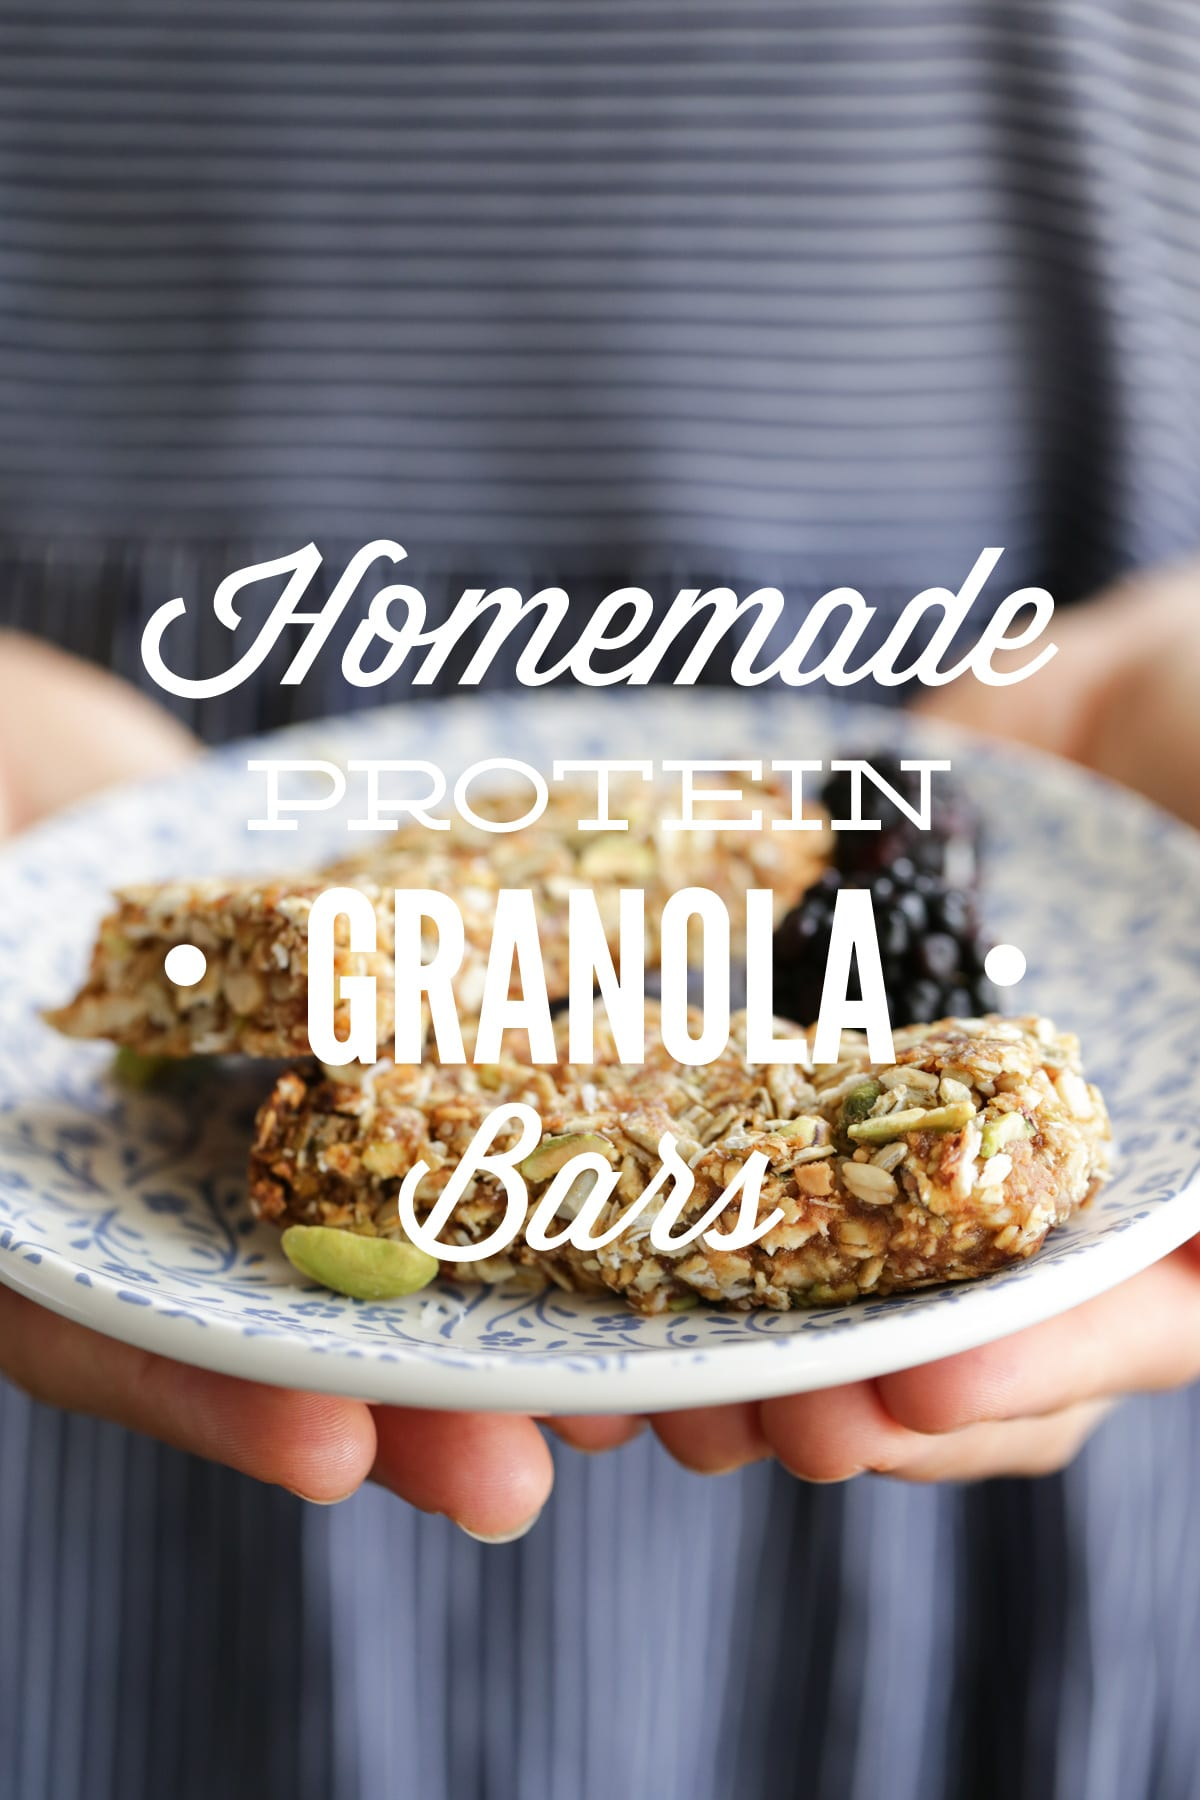 Homemade Protein Granola Bars - Live Simply